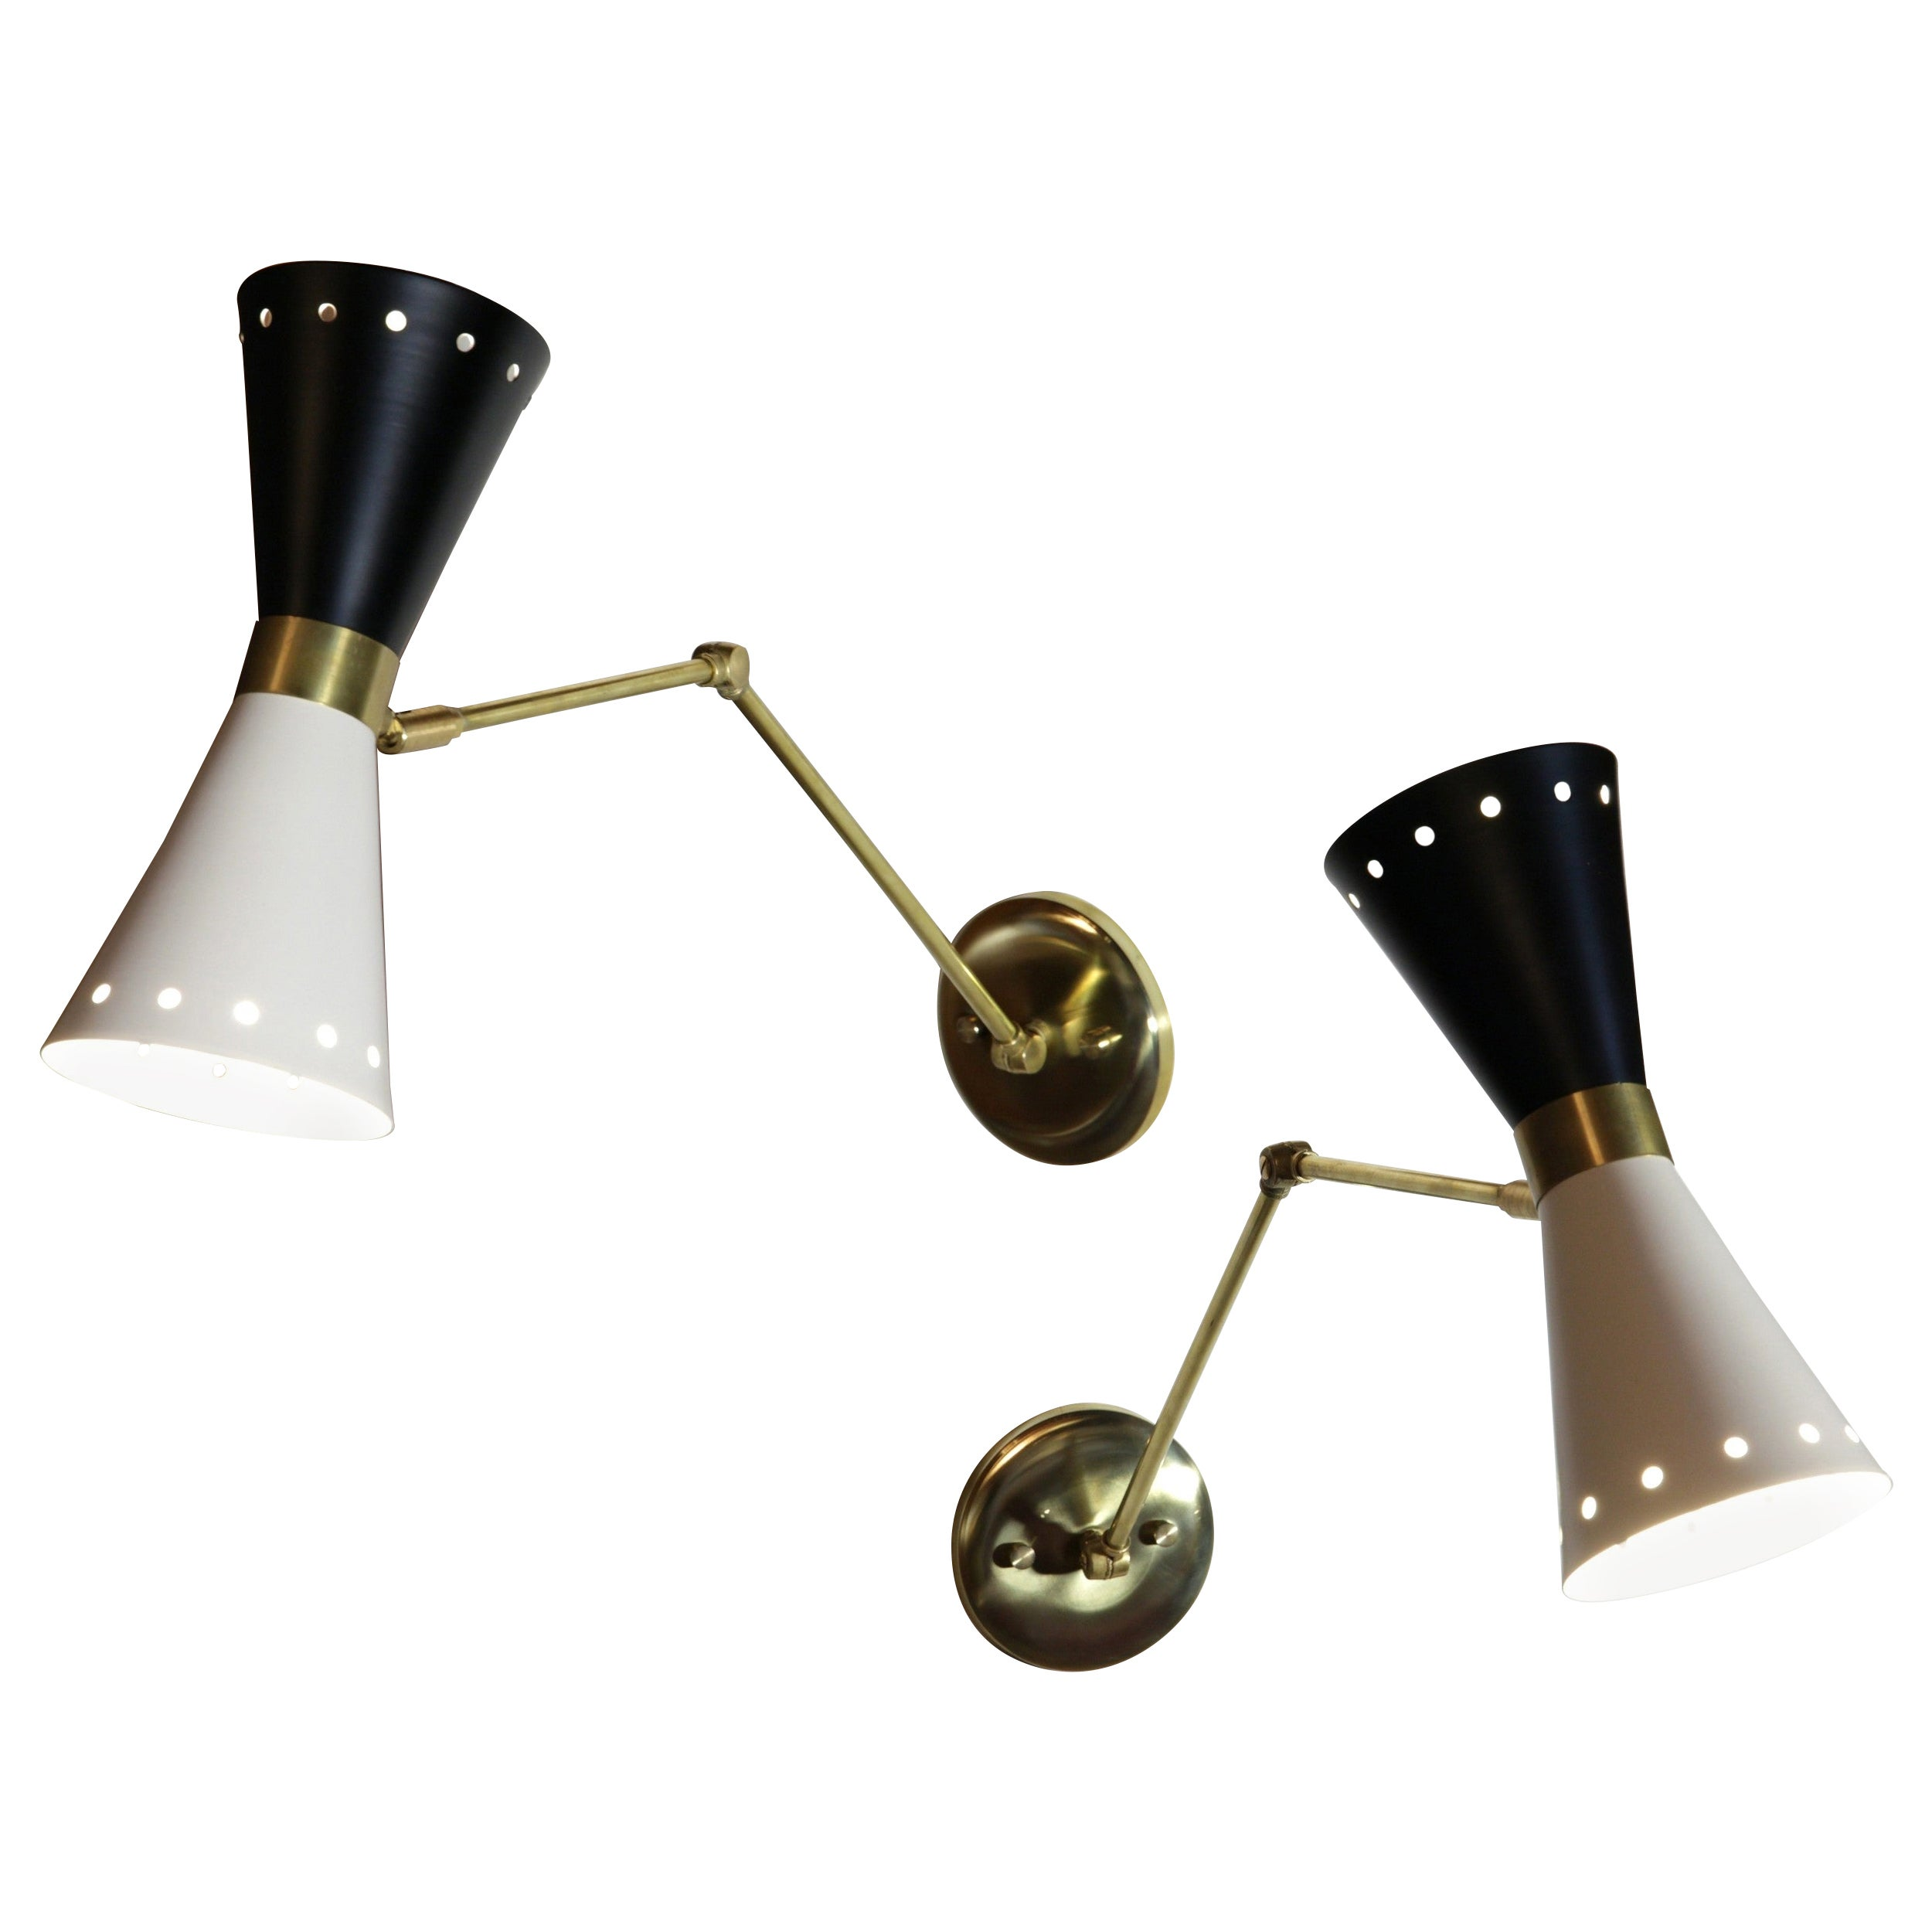 Cono Articulated Sconce Midcentury Stilnovo Style Solid Brass Black White Shade